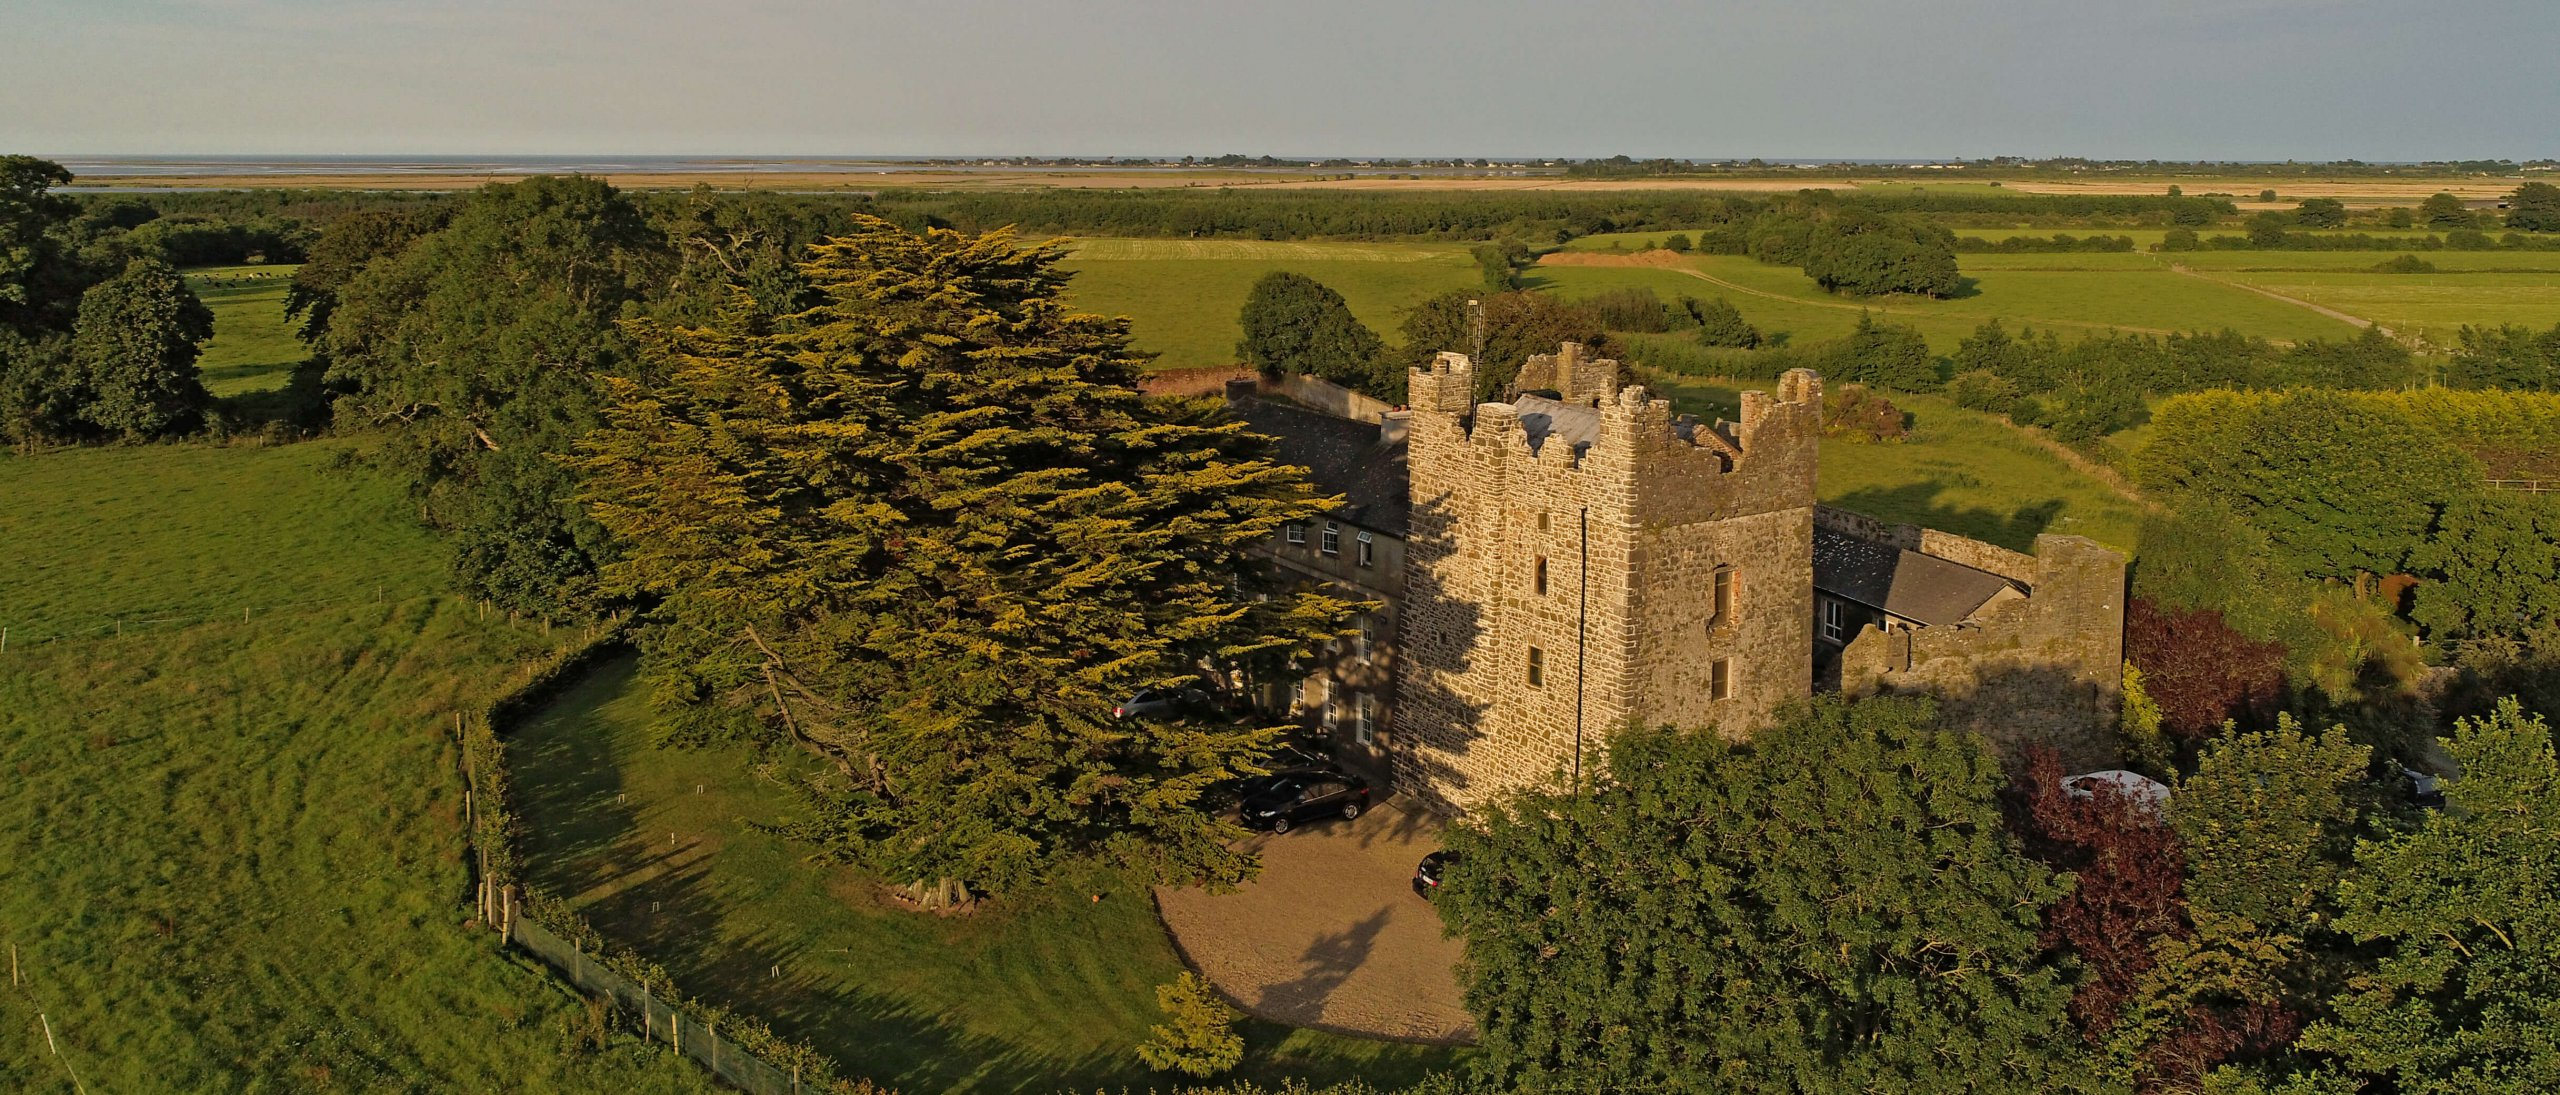 Killiane Castle surrounded by trees in Wexford, Ireland